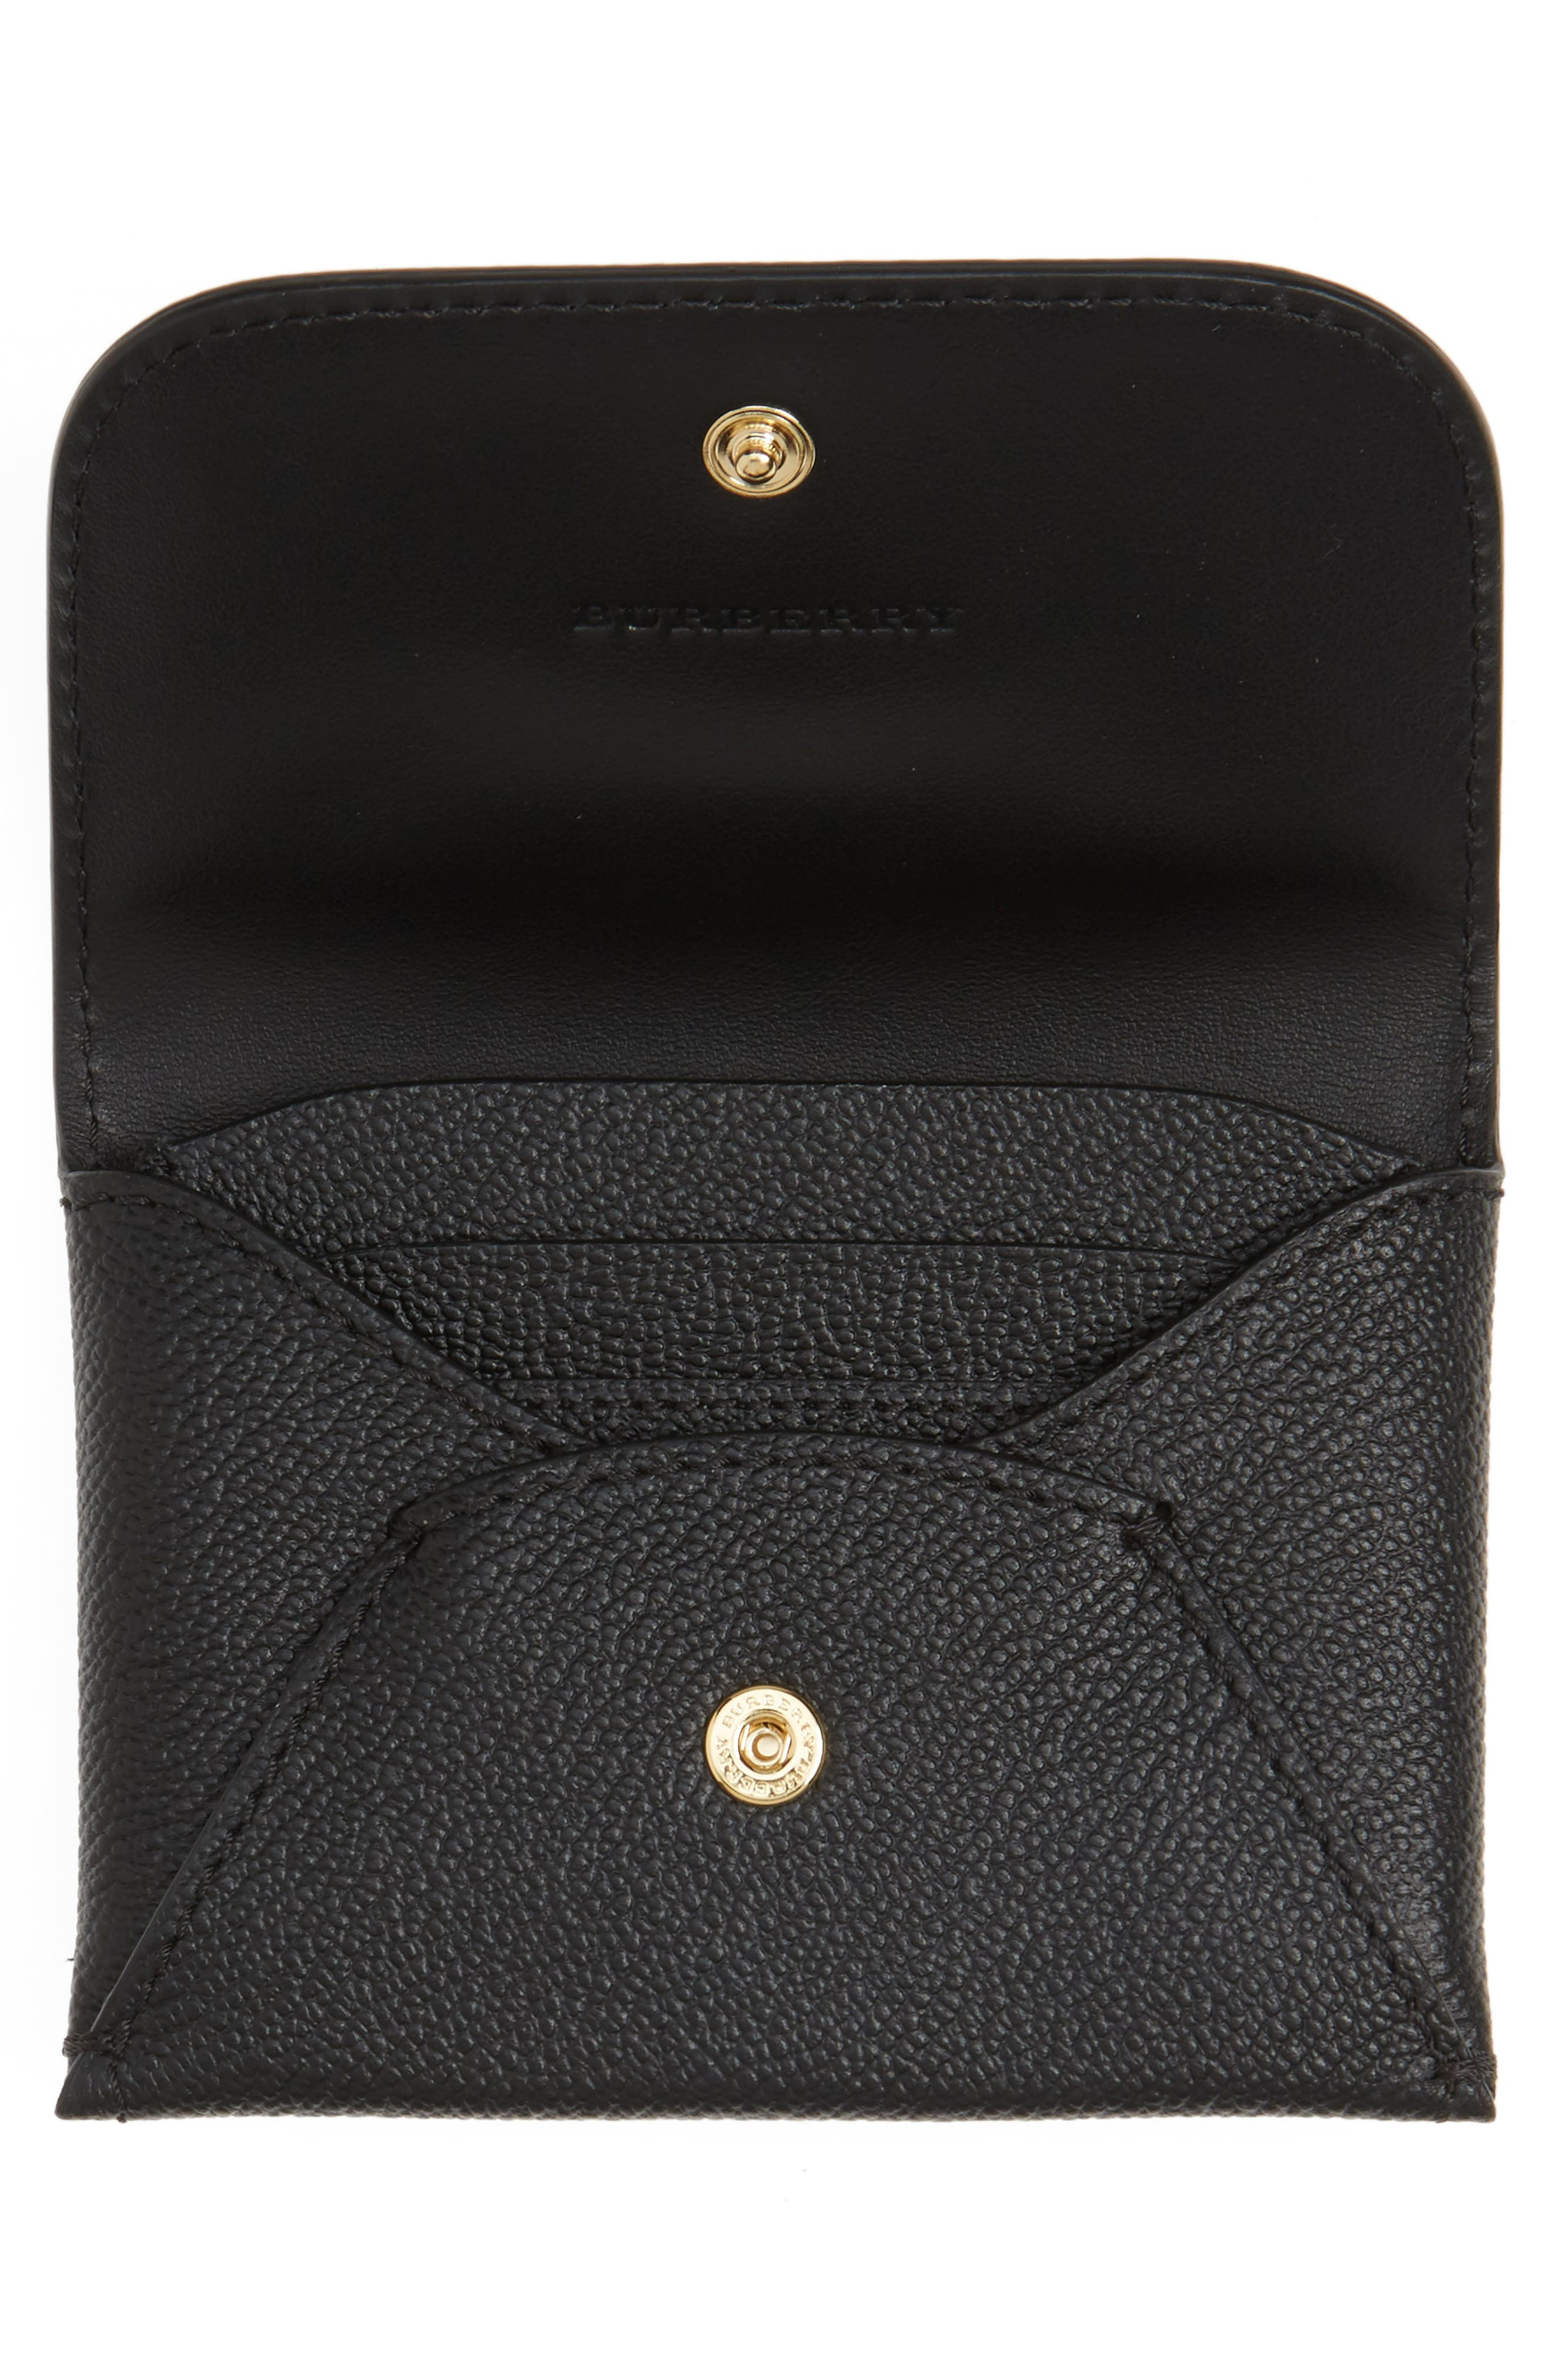 Mayfield Leather Card Case,                             Alternate thumbnail 2, color,                             001